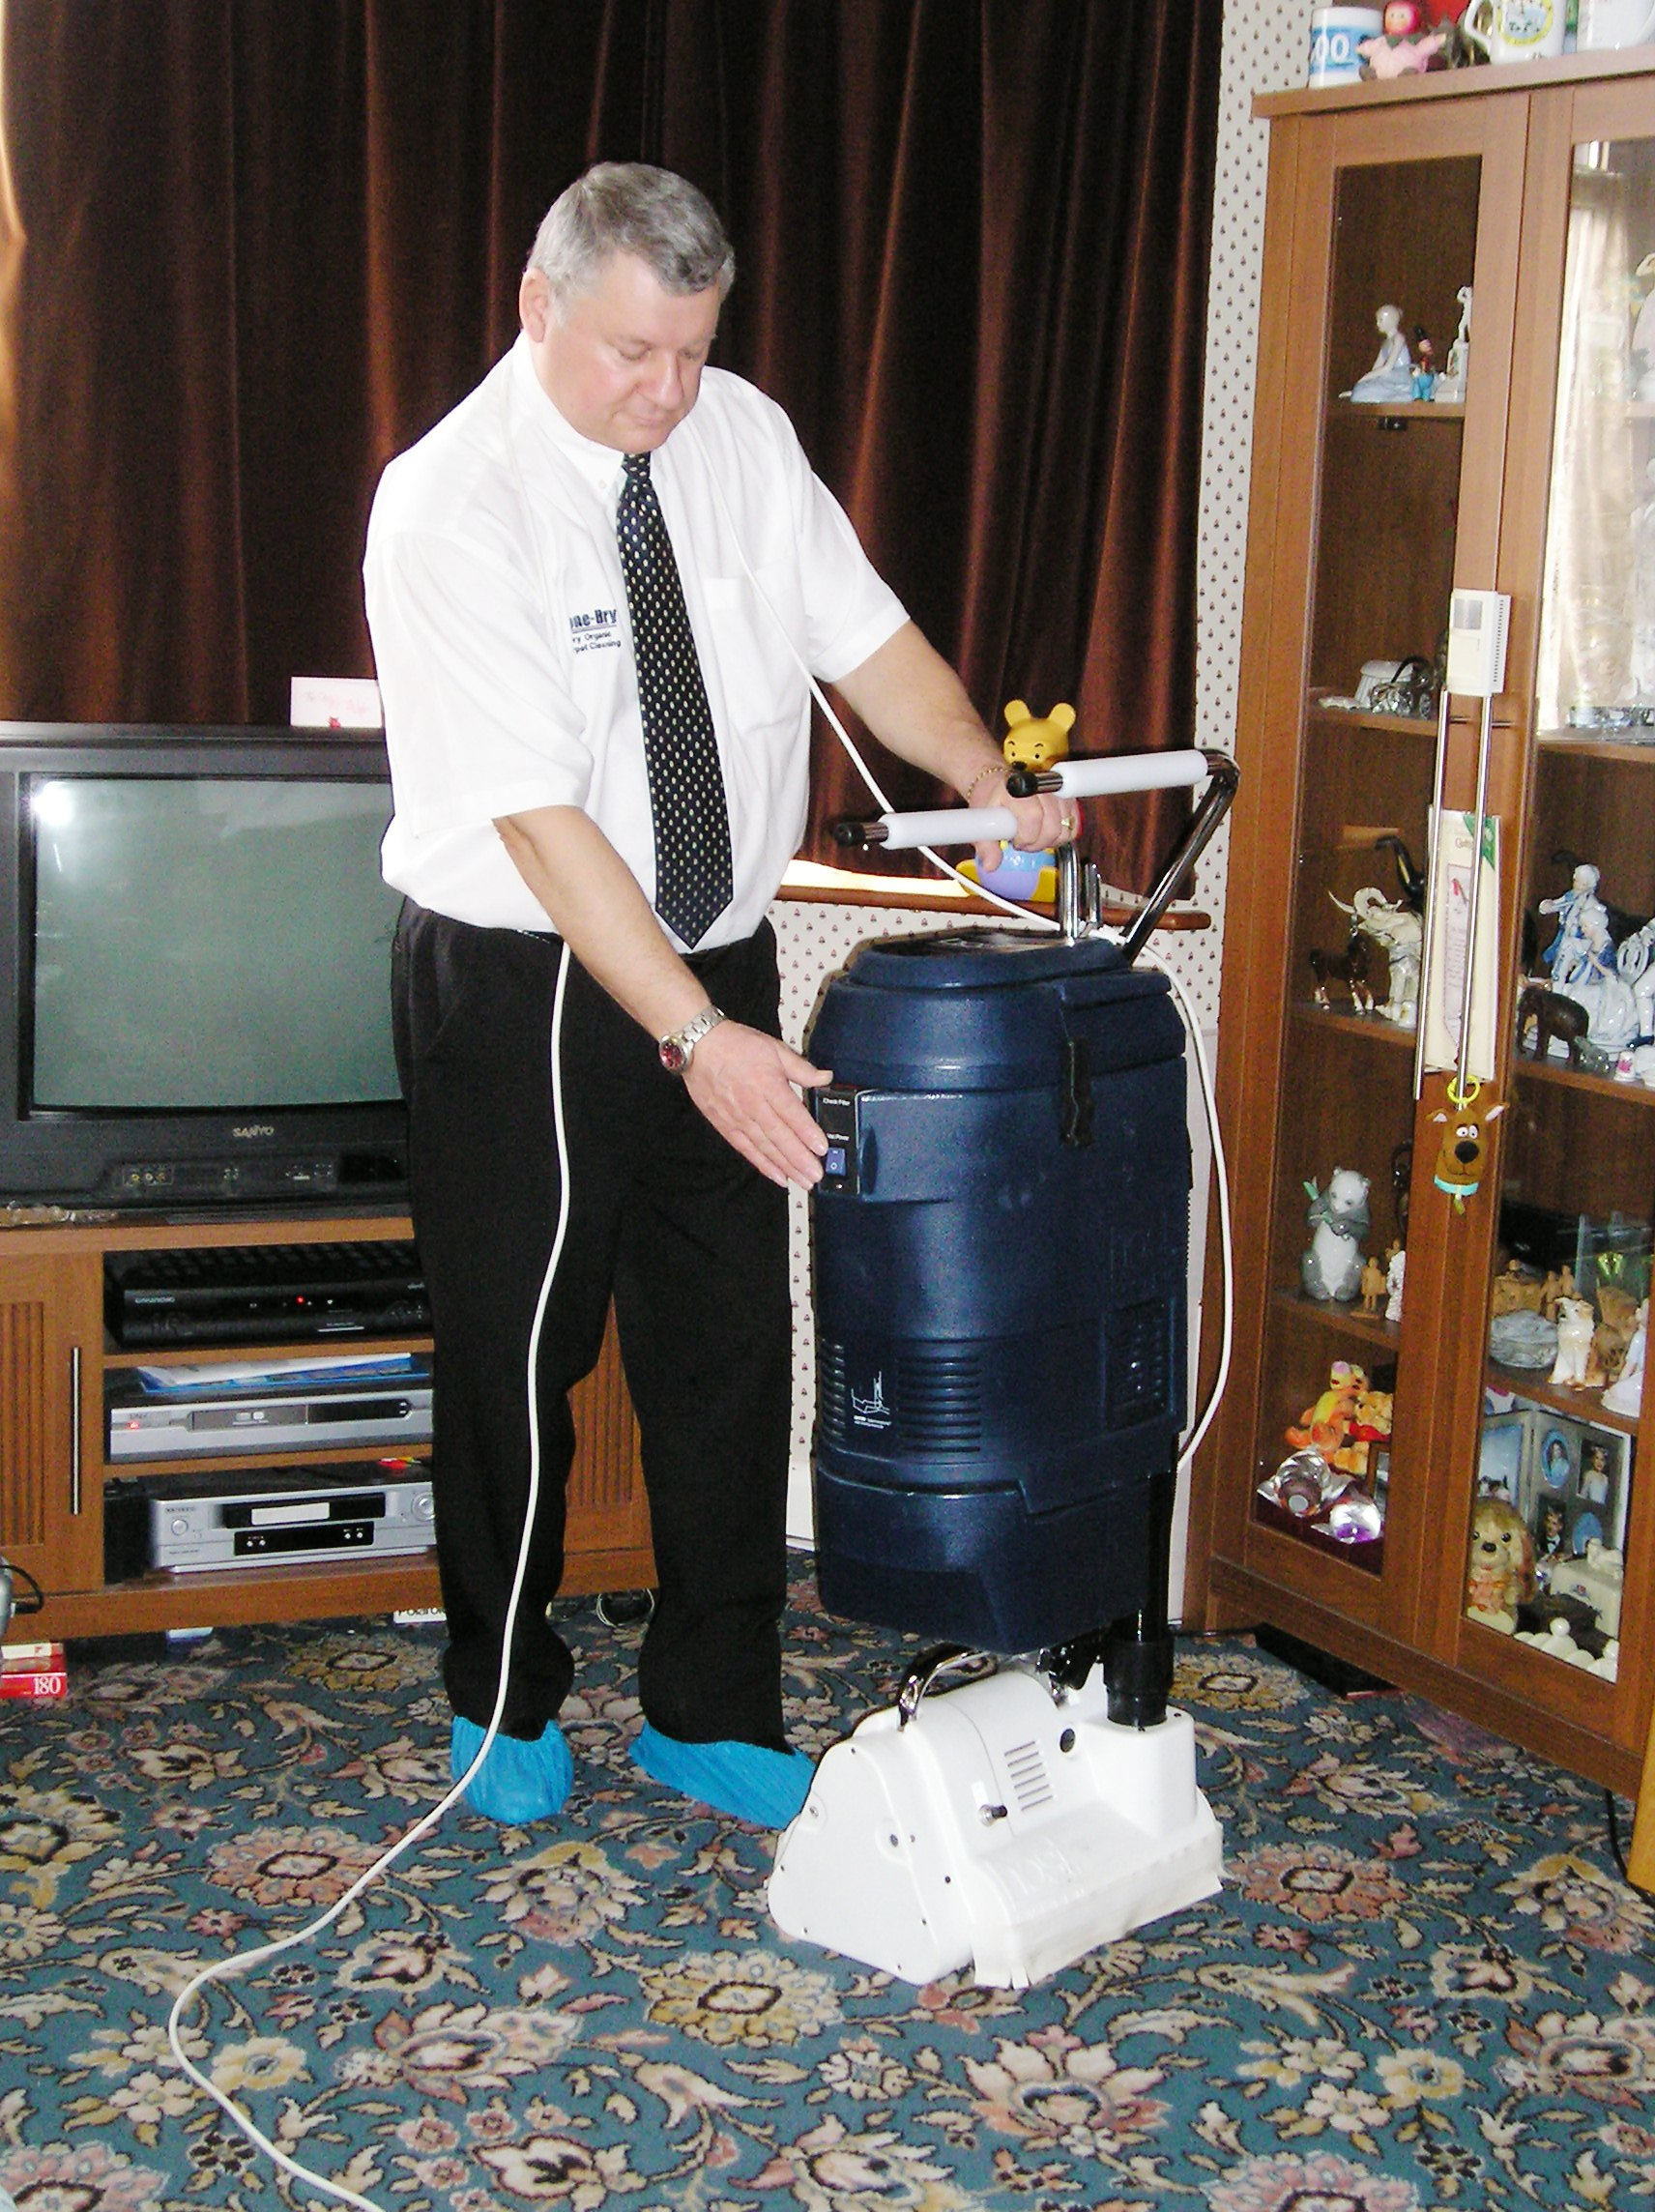 Bone Dry Carpet Cleaning Dry Carpet Cleaning With Zero